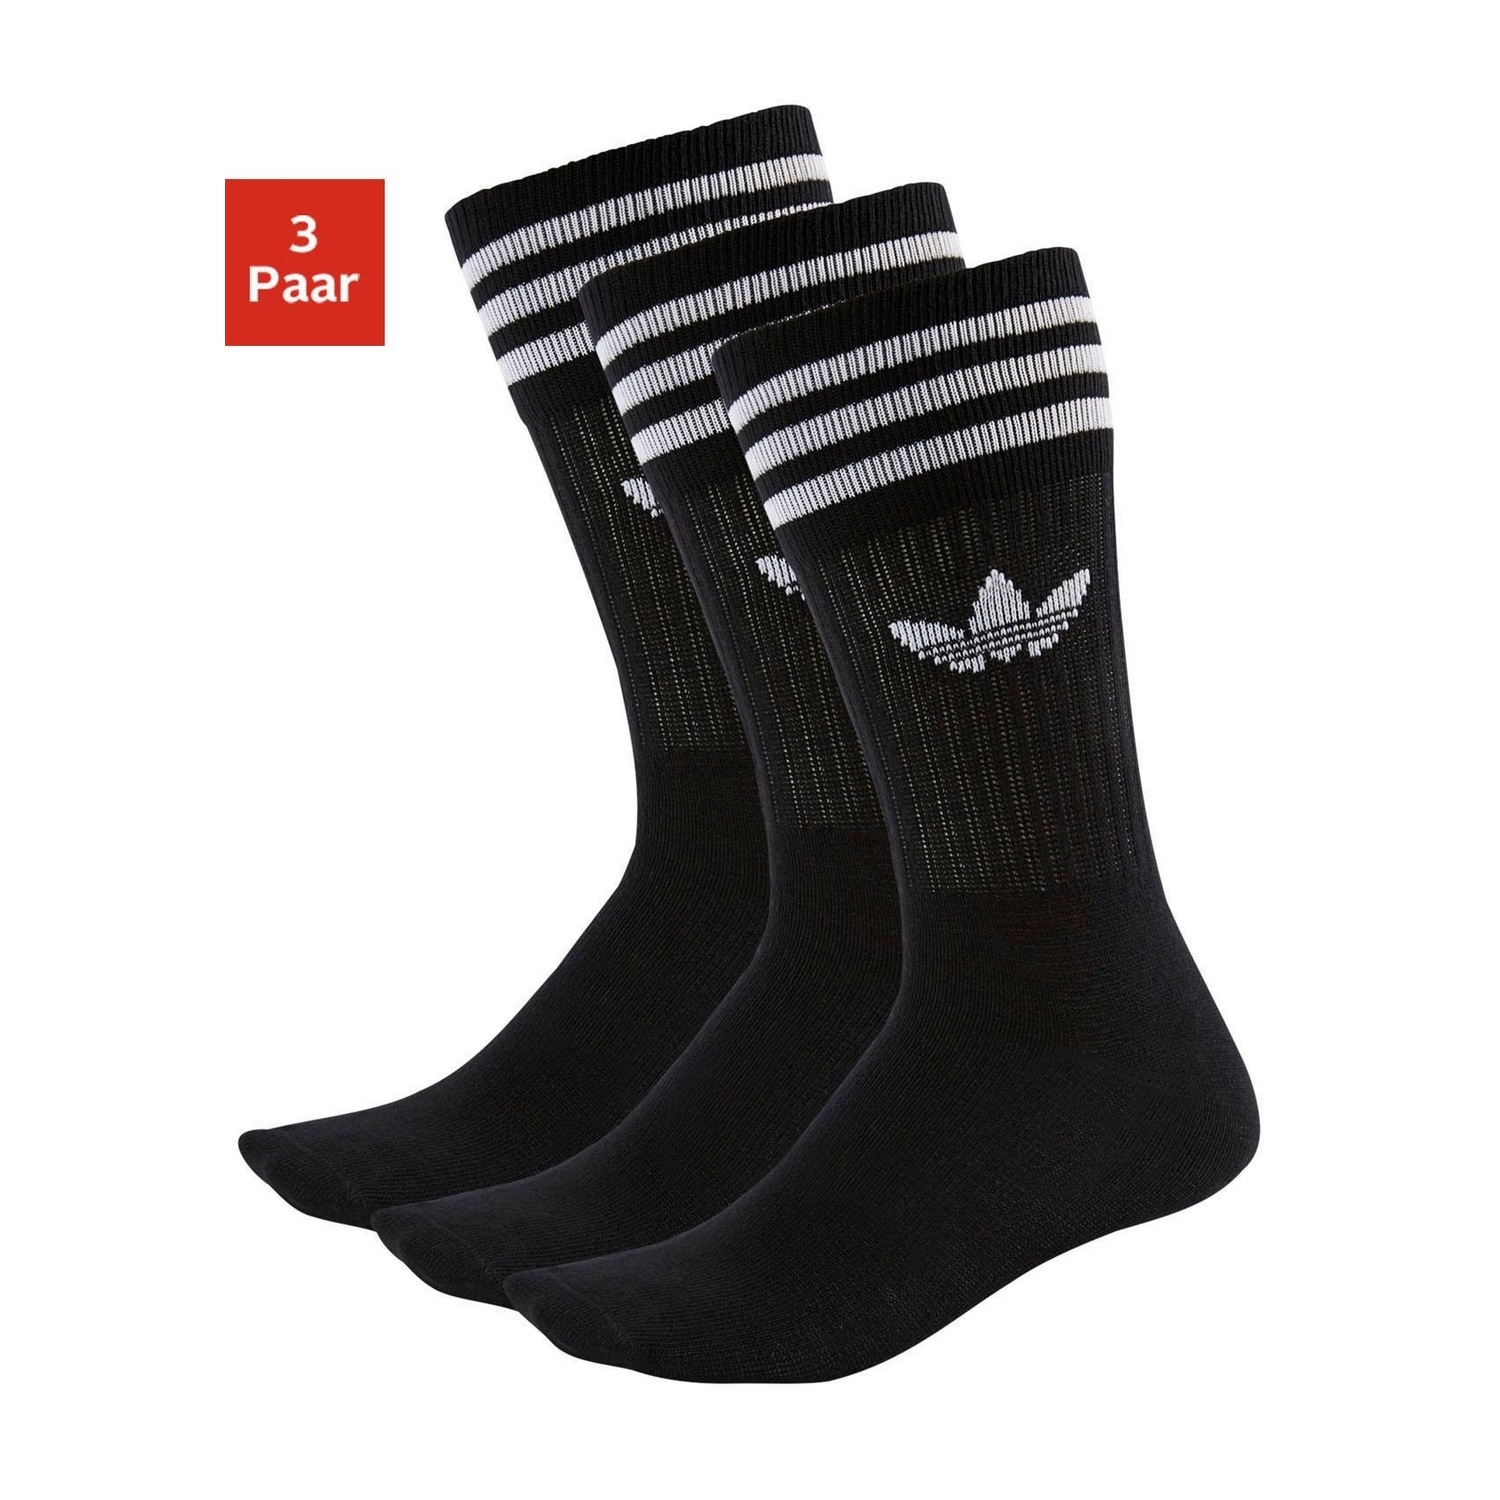 packung tennissocken 3x schwarz von adidas lascana. Black Bedroom Furniture Sets. Home Design Ideas